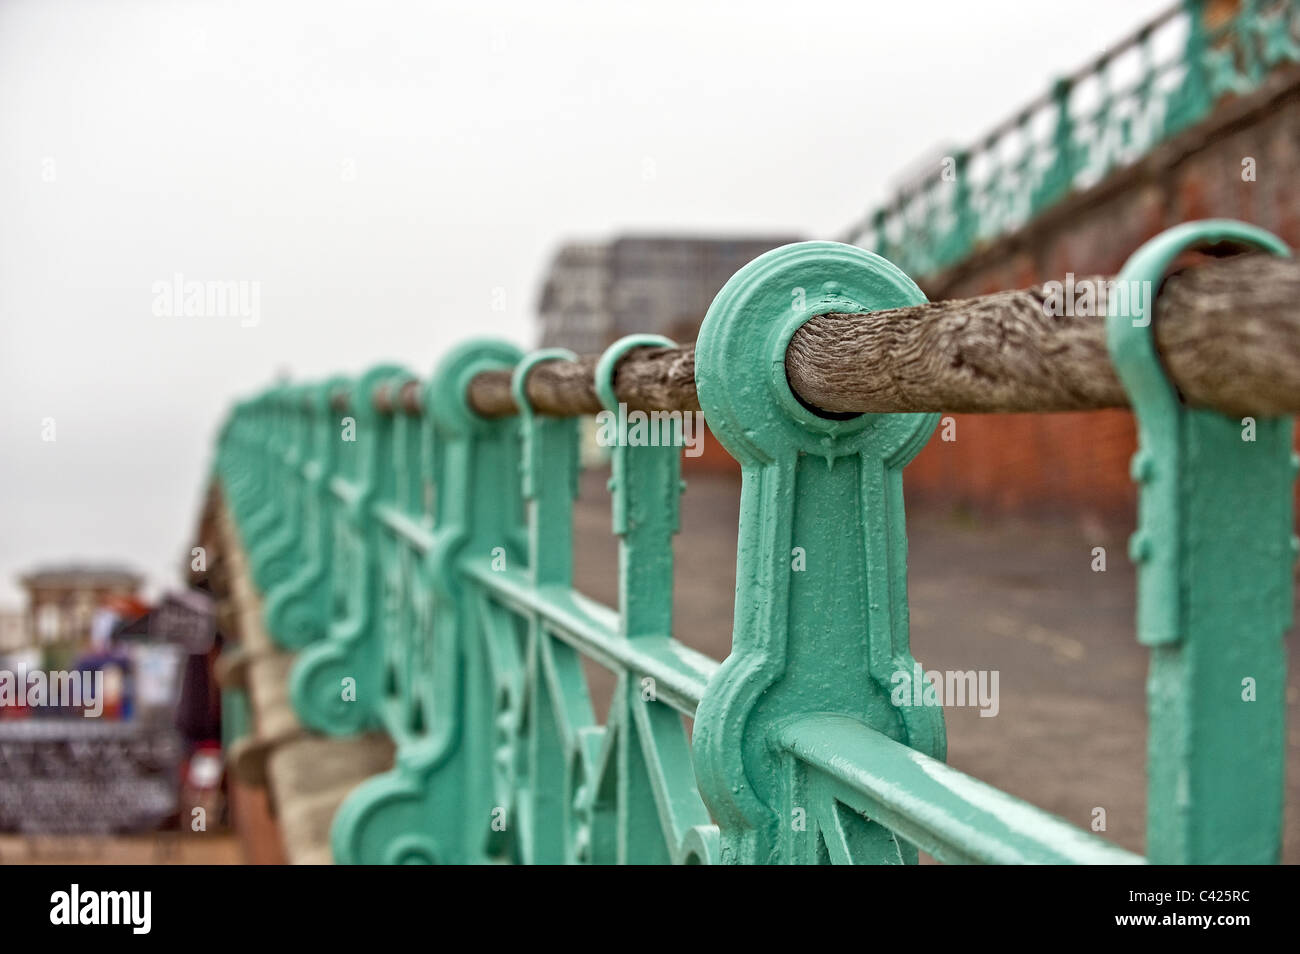 A handrail on the seafront at Brighton - Stock Image